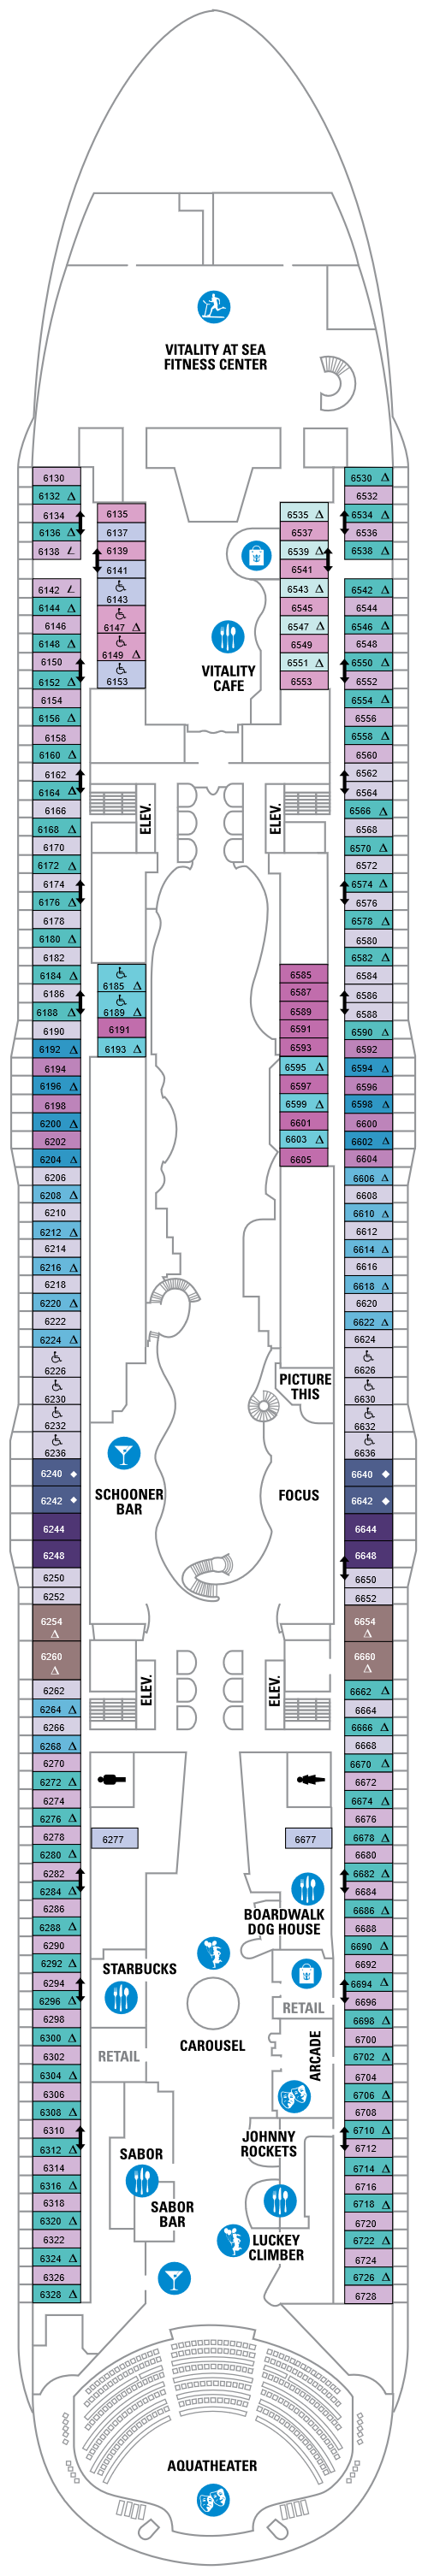 Harmony of the Seas Deck 6 layout